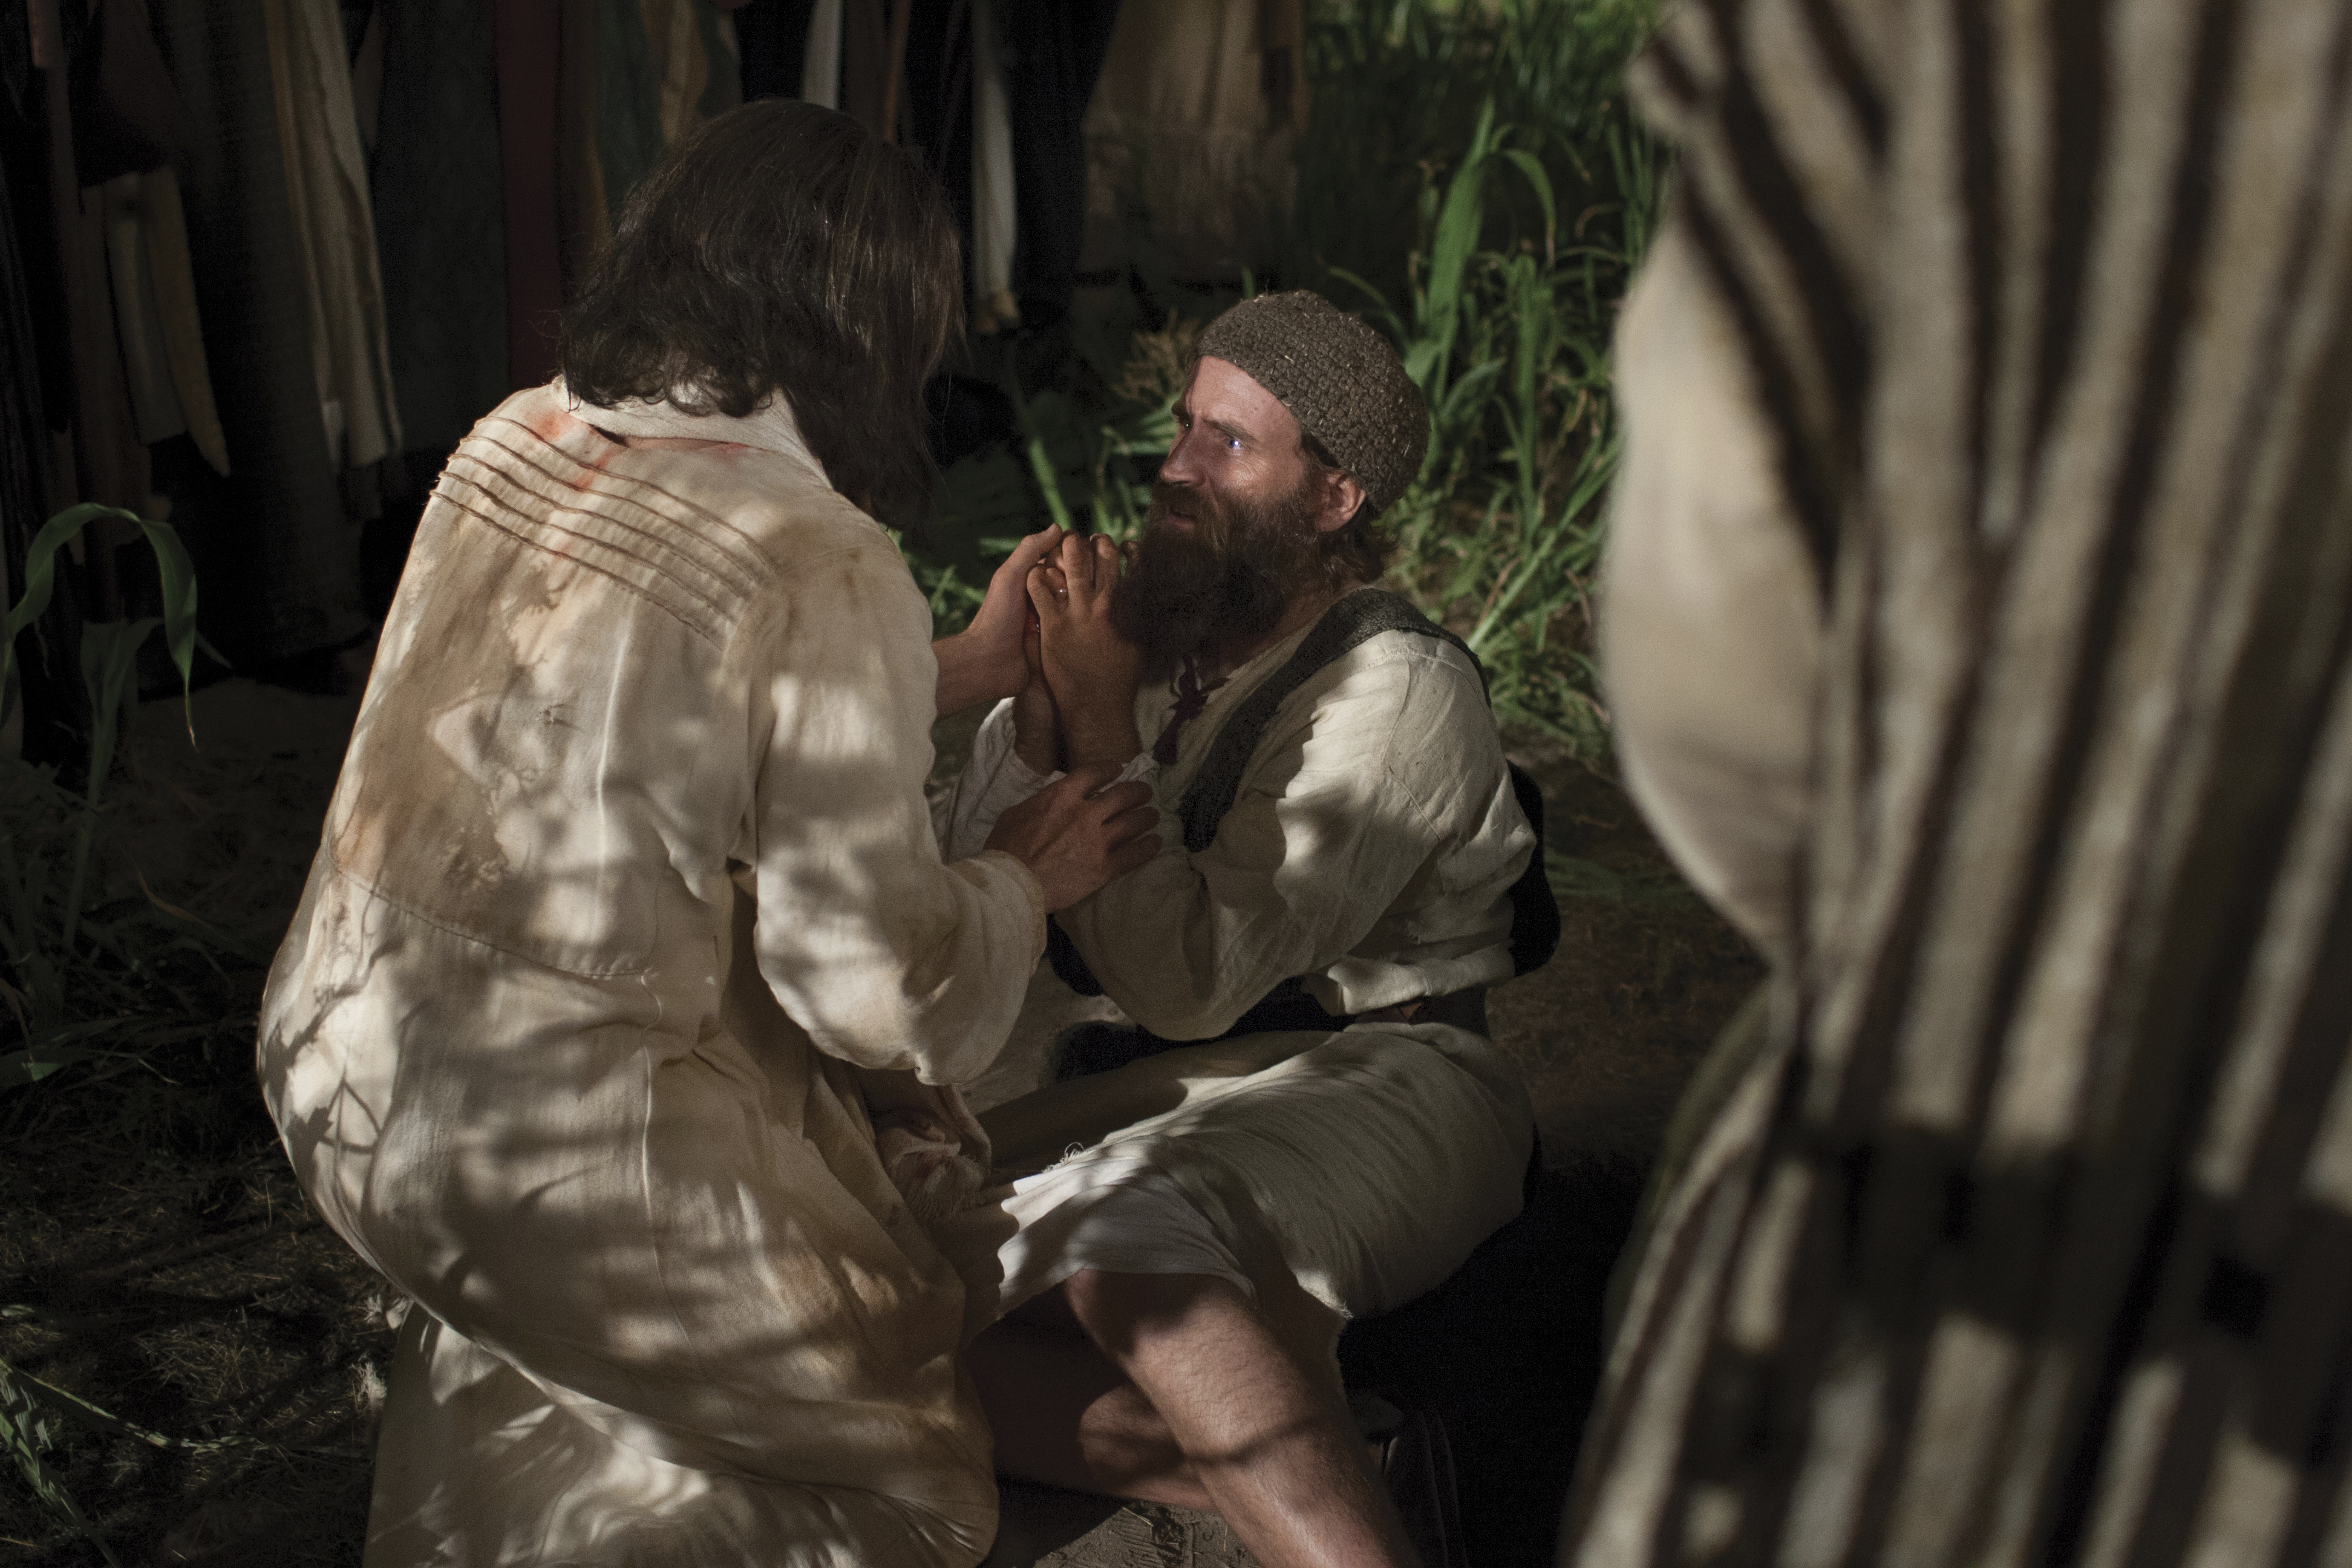 At the scene of His arrest, Jesus heals the soldier whose ear was cut off by Peter.